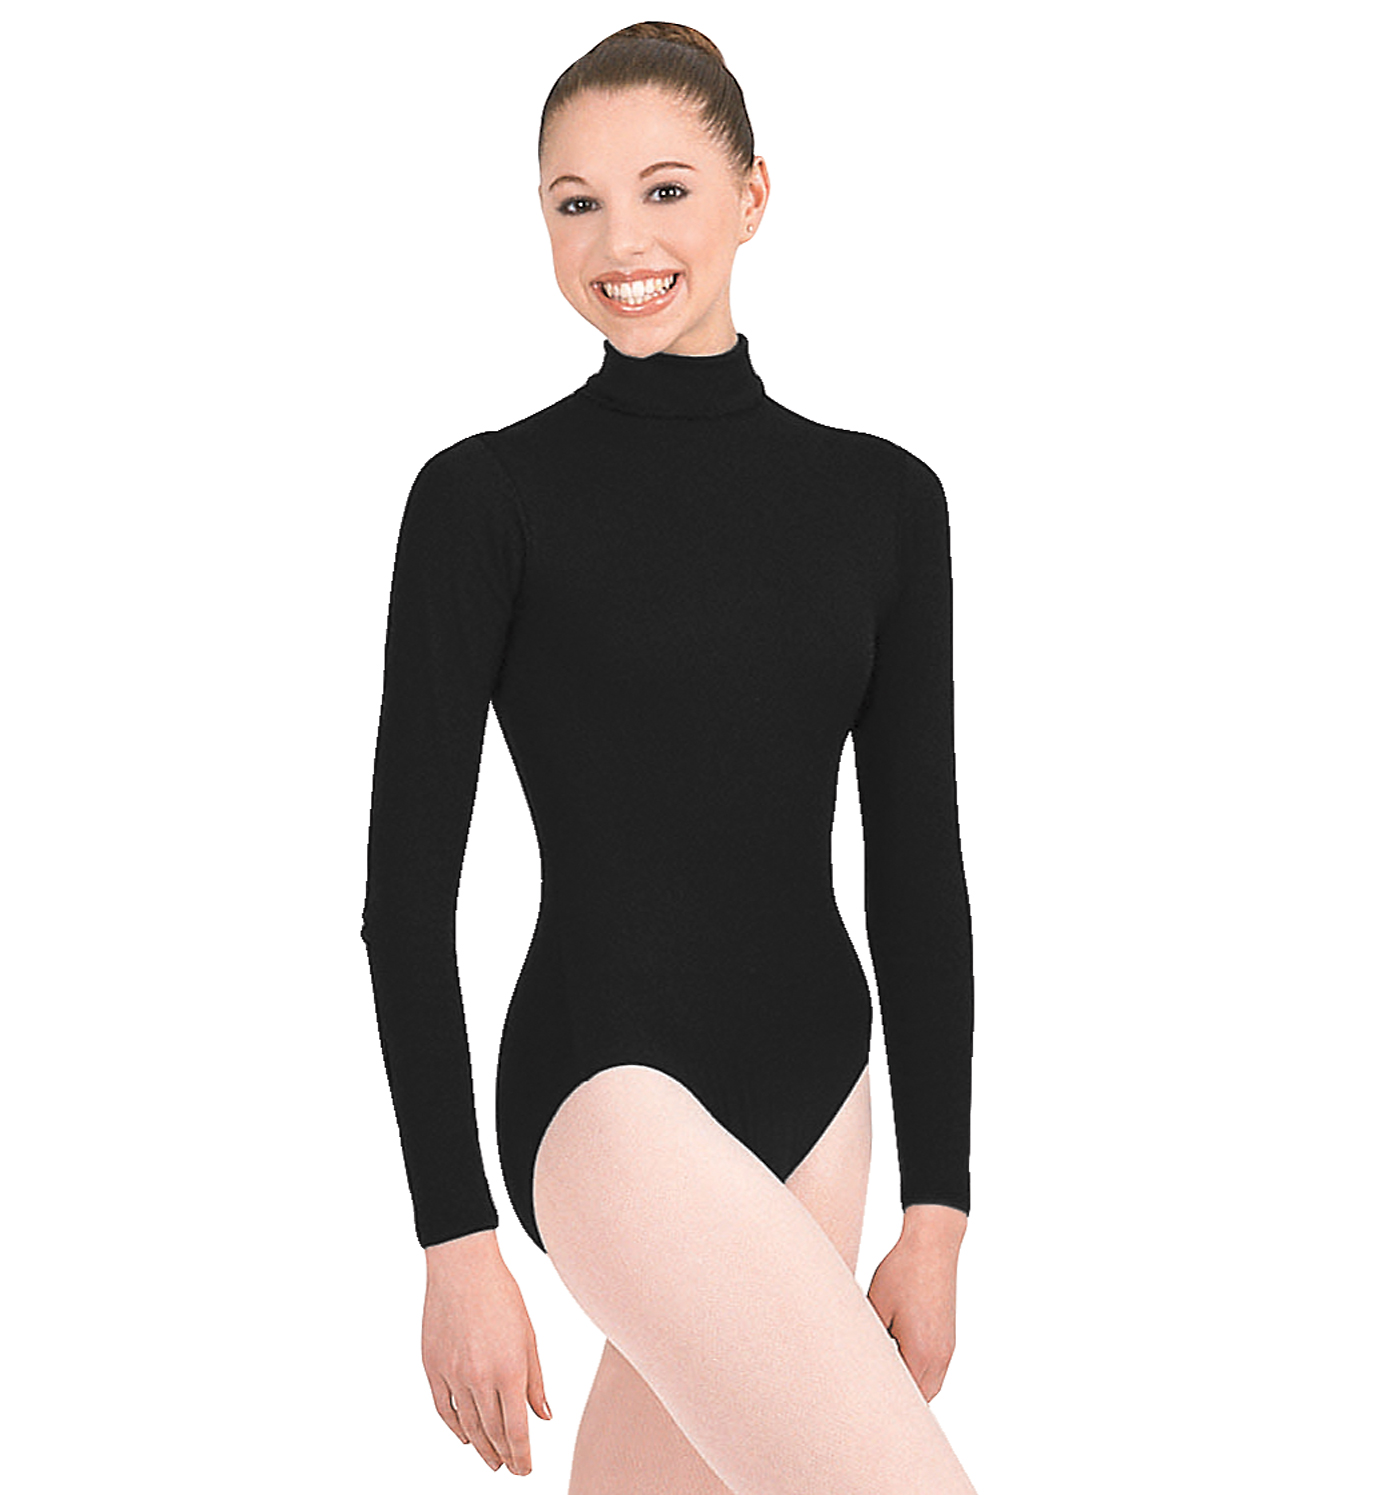 66113553e7fd5 Sue's Shop - TURTLE NECK LONG SLEEVE LEOTARD